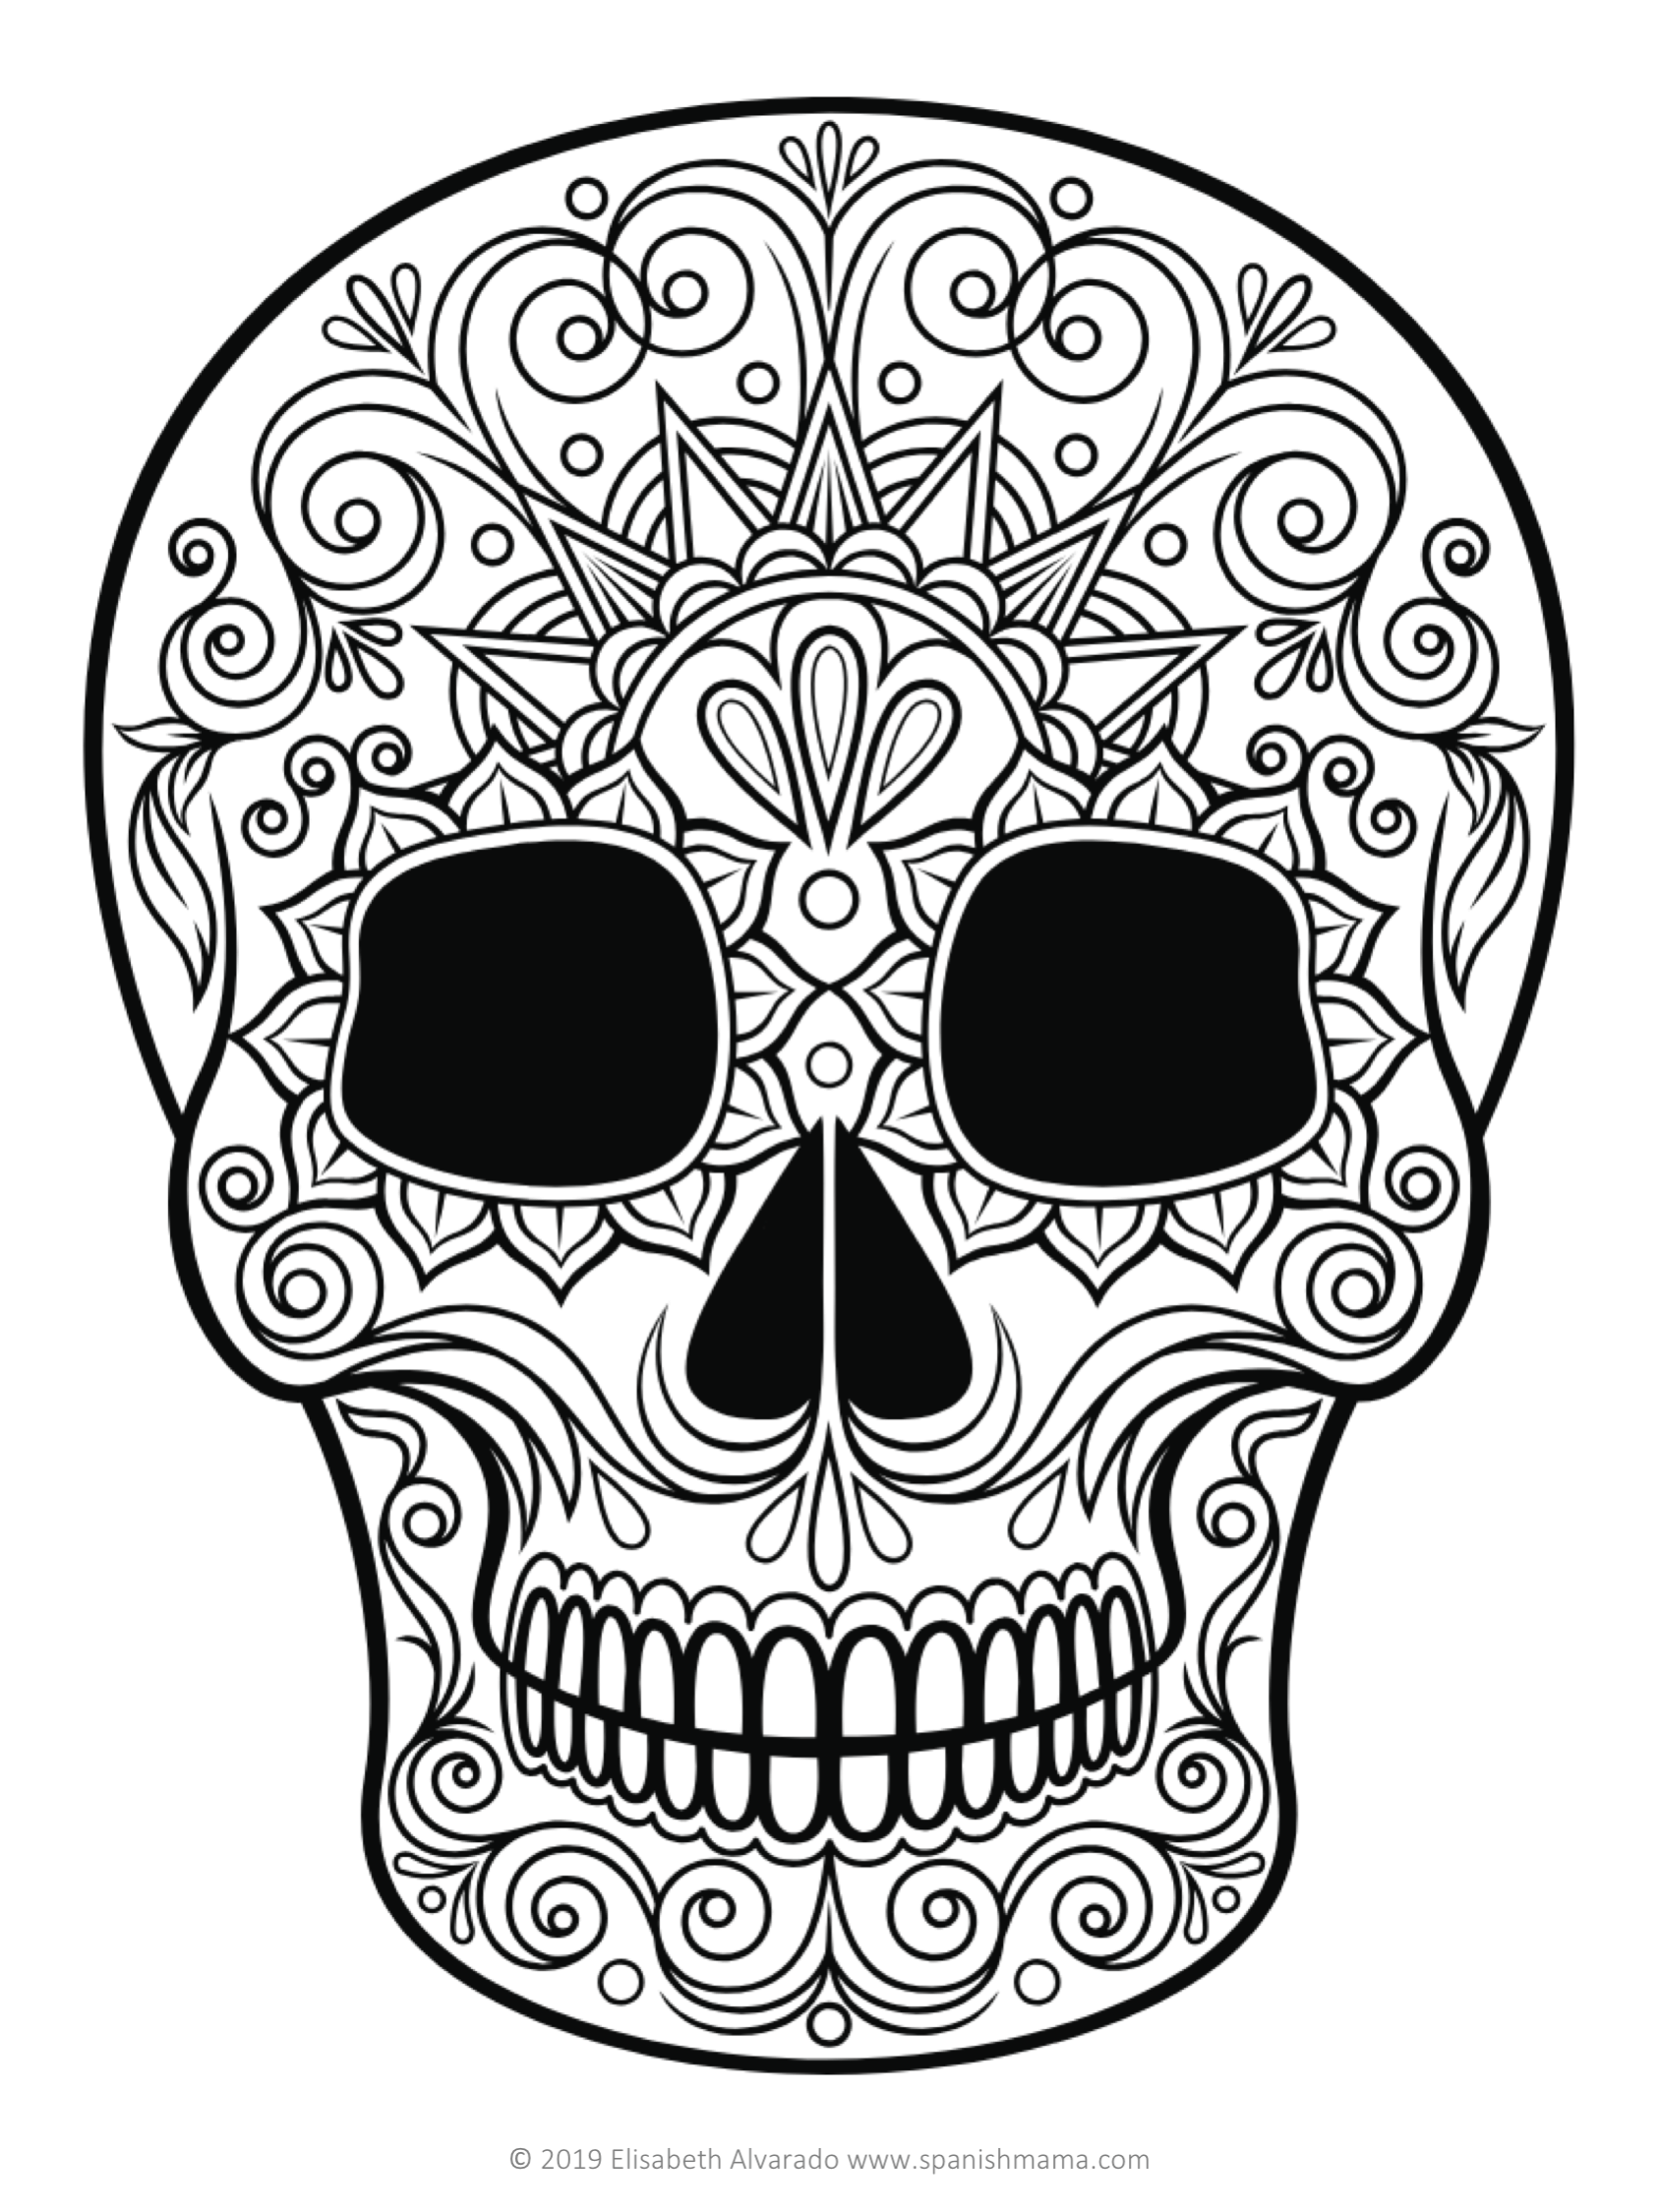 Sugar Skull Coloring Pages And Masks For Dia De Muertos Skull Coloring Pages Sugar Skull Images Coloring Pages